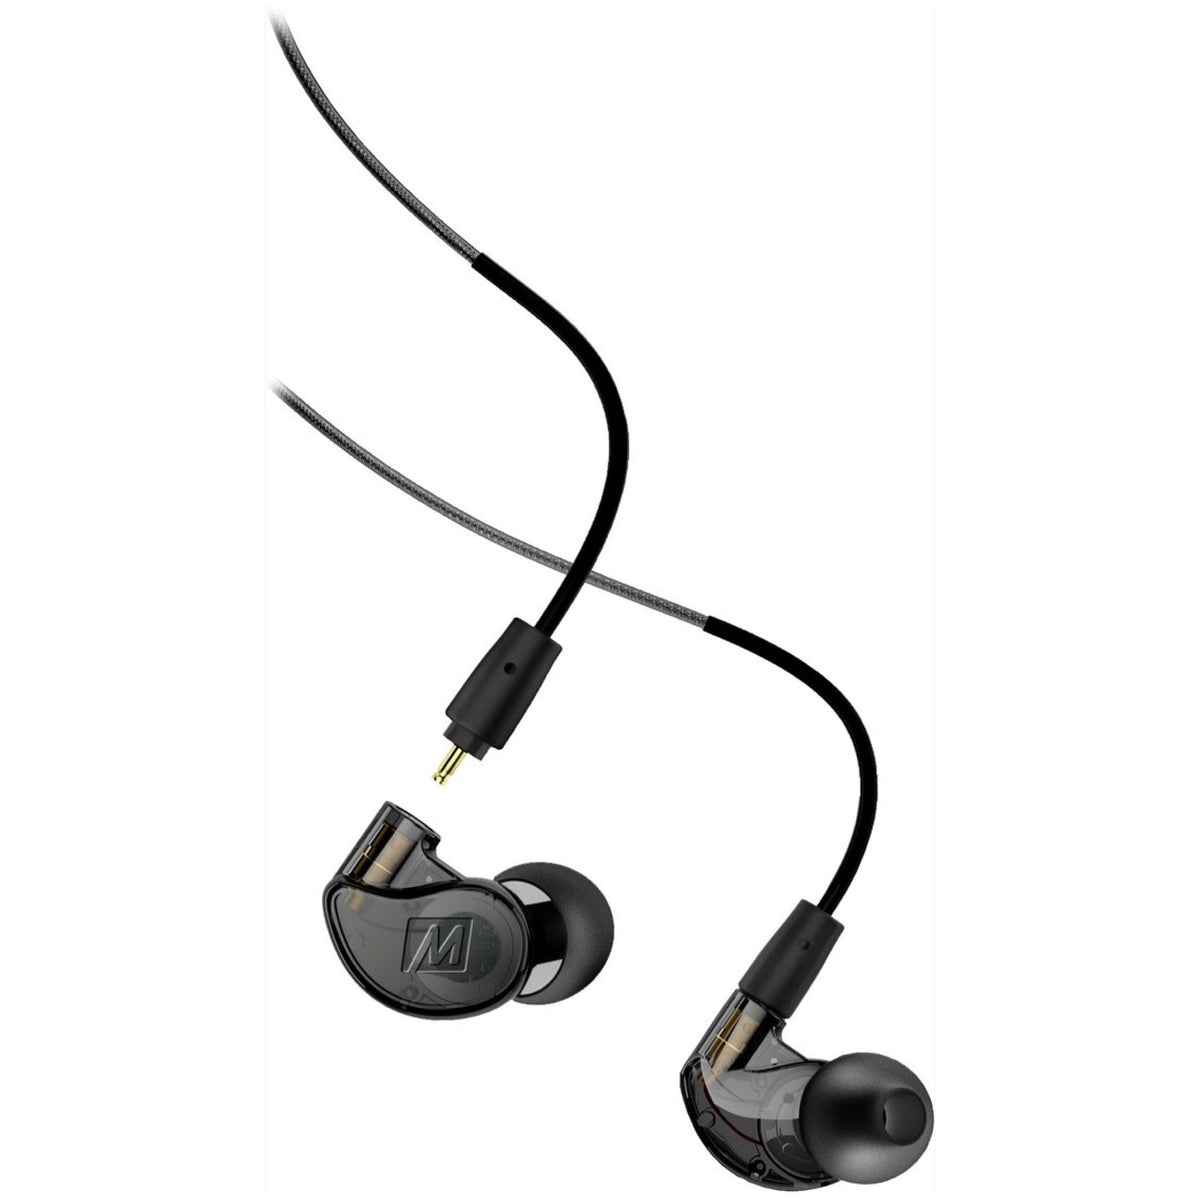 MEE Audio M6 PRO 2 In-Ear Headphones with Bluetooth Cable, Black